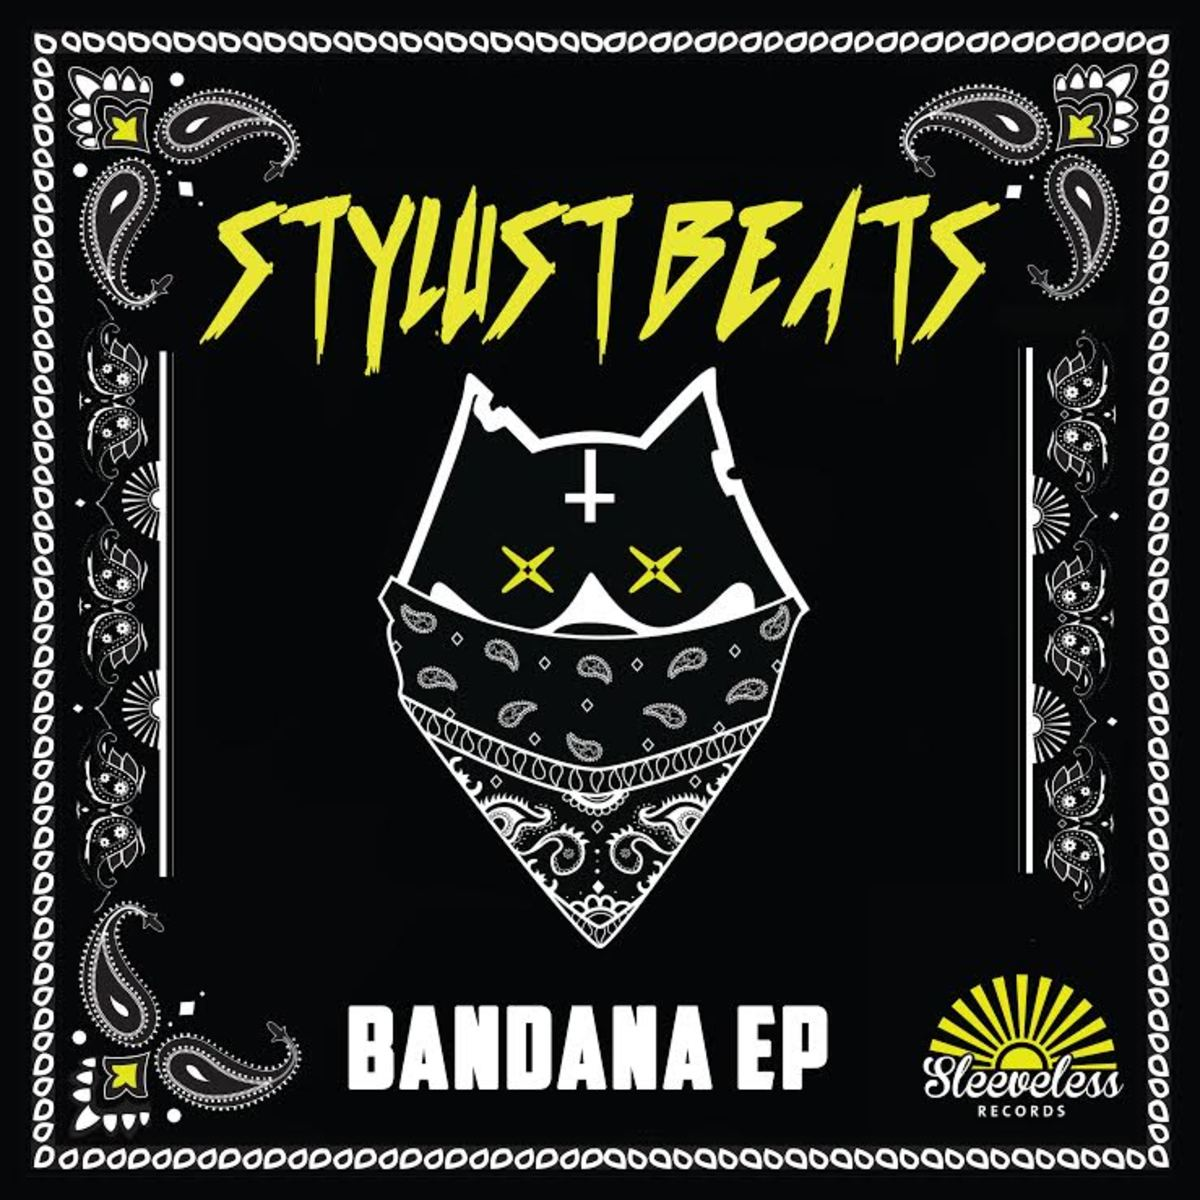 Stylust Beats Bandana EP Artwork